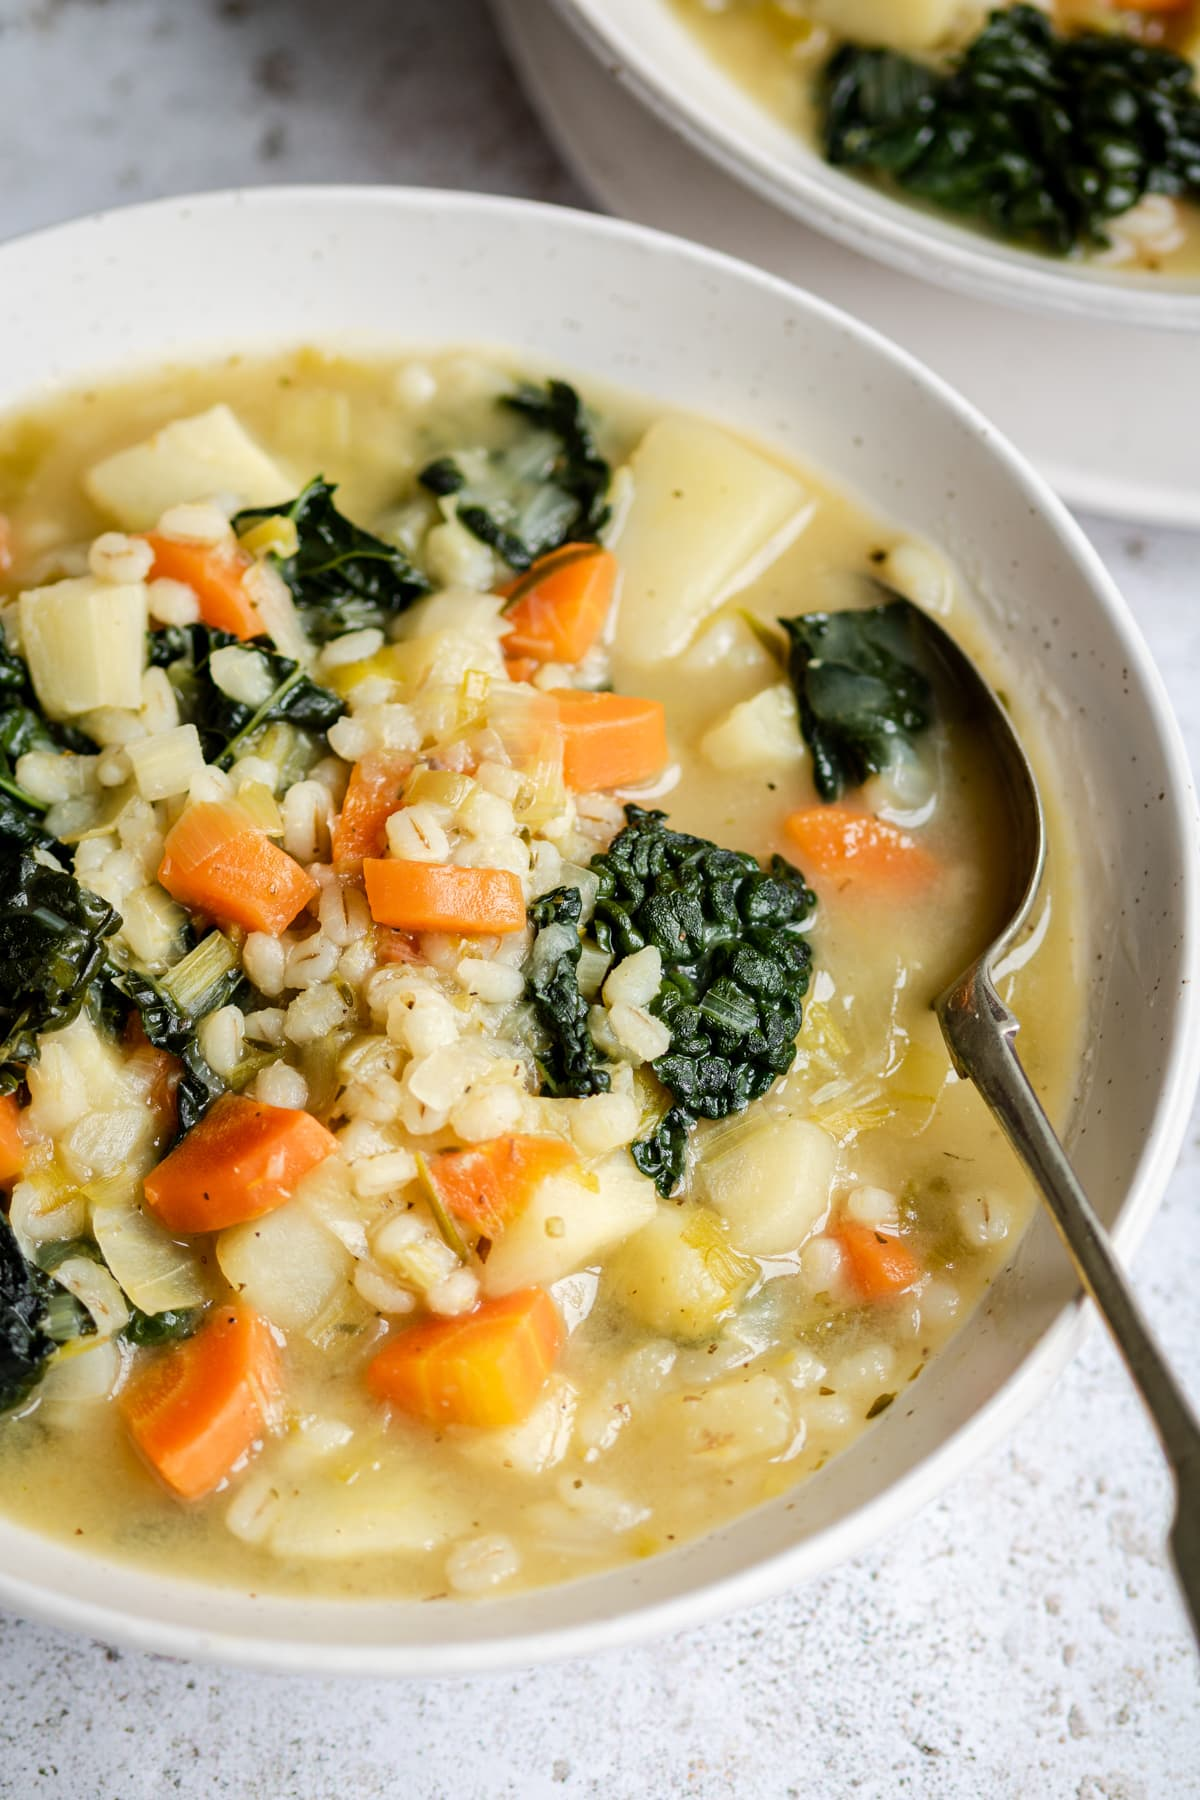 A soup made of potatoes, carrots, celery, parsnips and kale with pearl barley